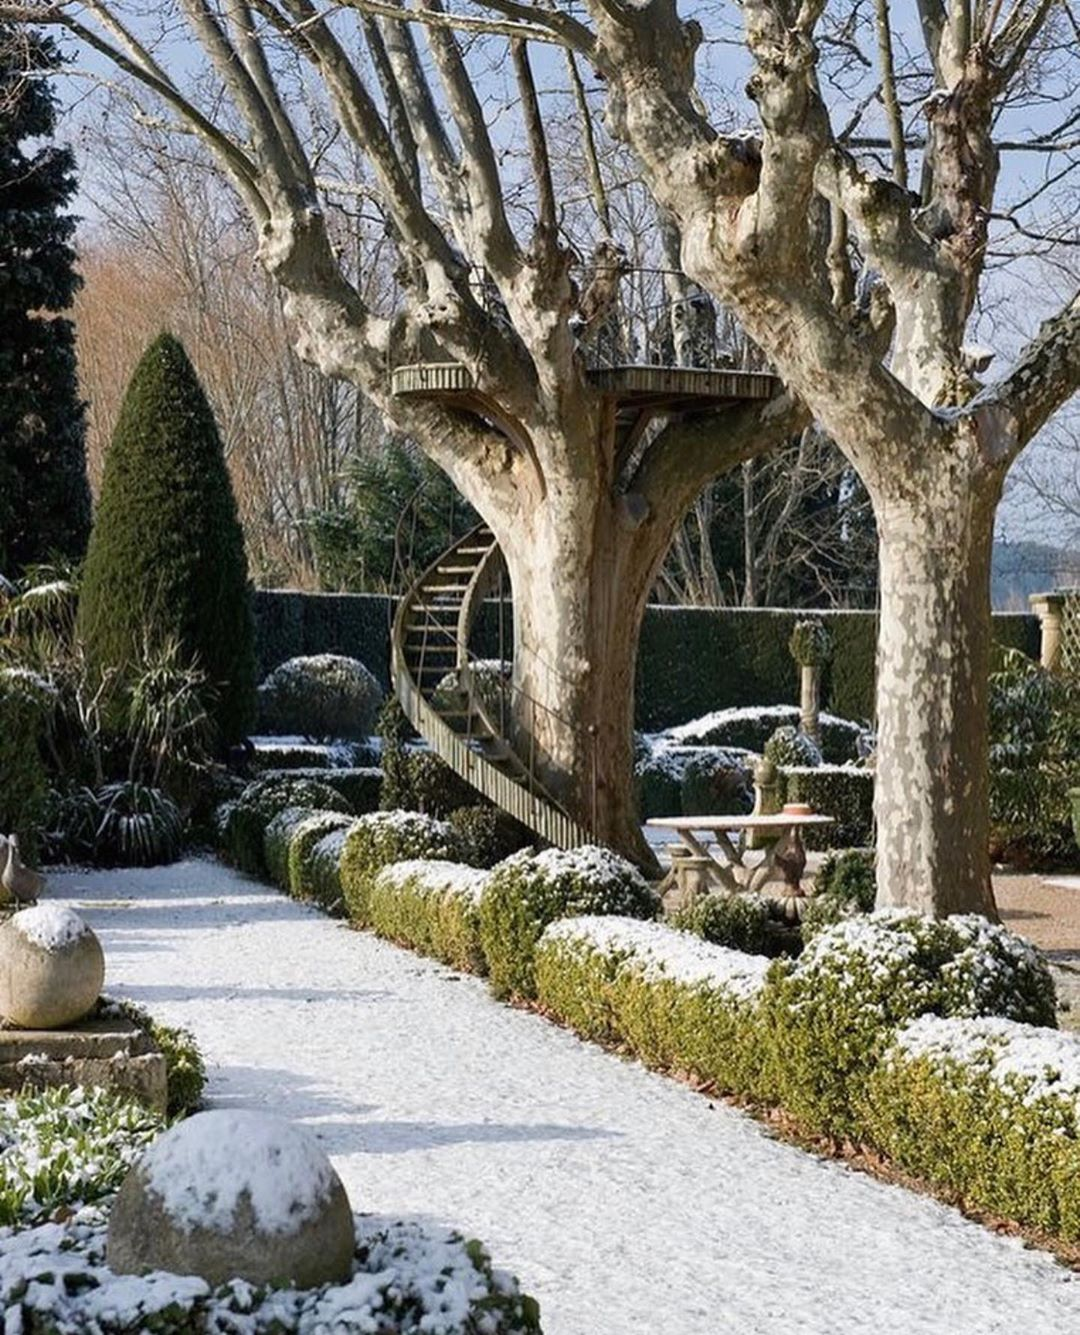 Savoy Gardens On Instagram Les Confines St Remy De Provence France The Most Perfect Tree House At Les In 2020 Winter Garden Dream Garden Beautiful Gardens